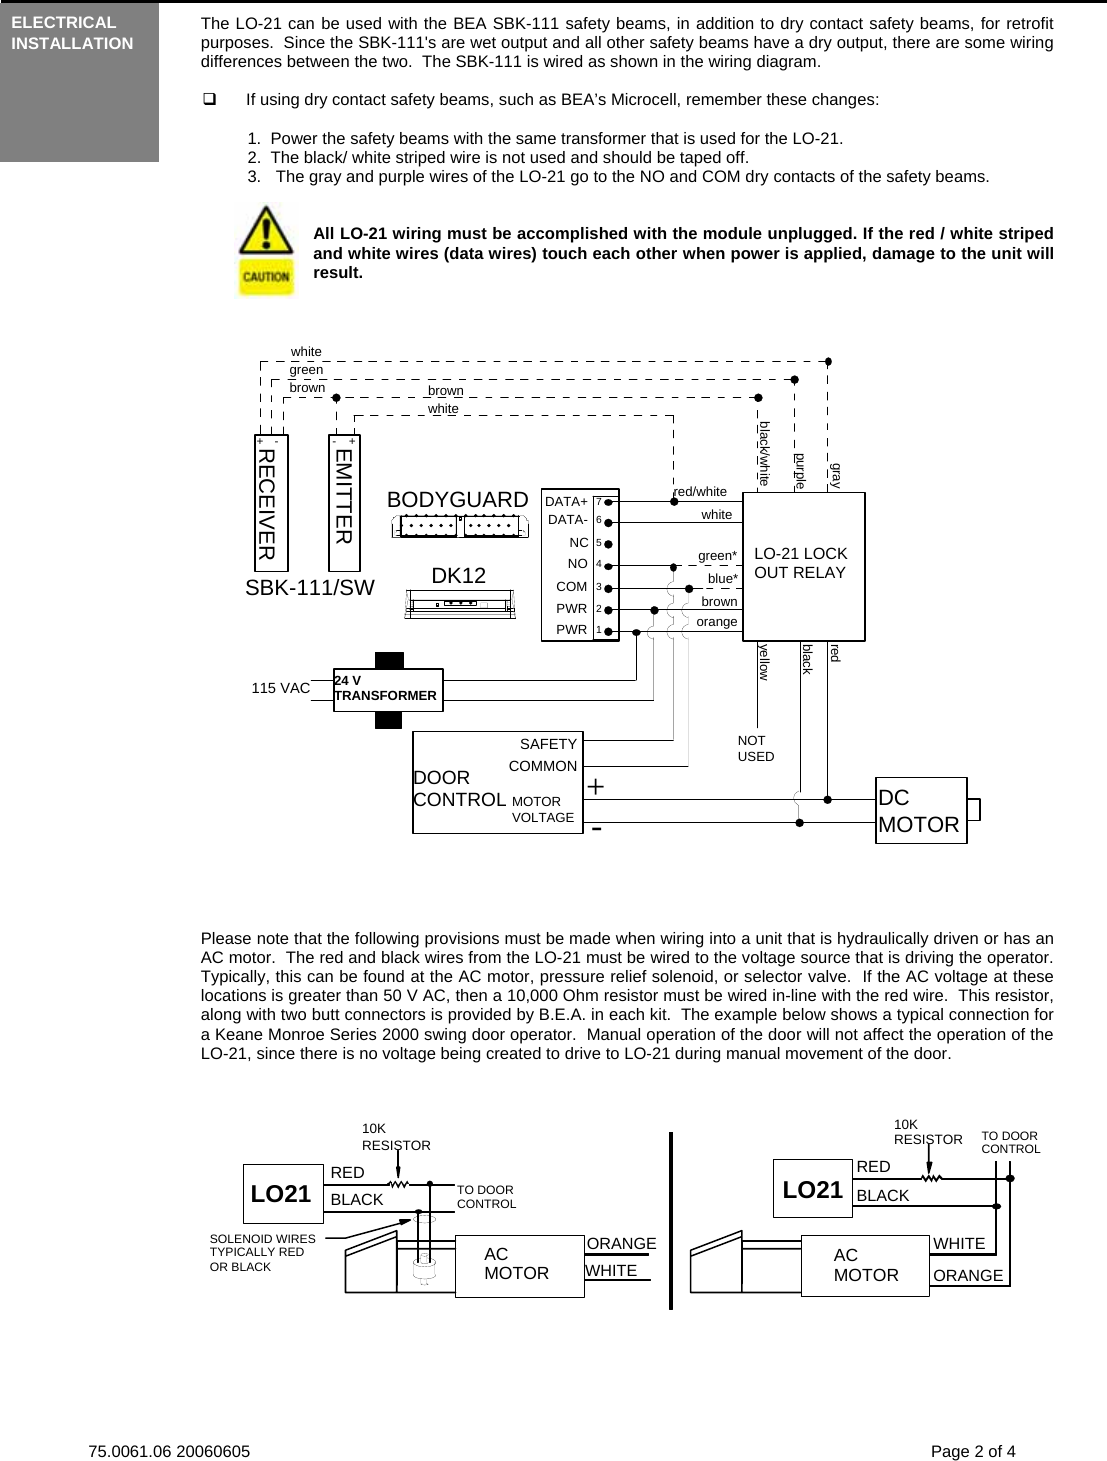 Bea User Guide Lo21 75006106 Lo 21 20060605 Wiring Diagrams Page 2 Of 4